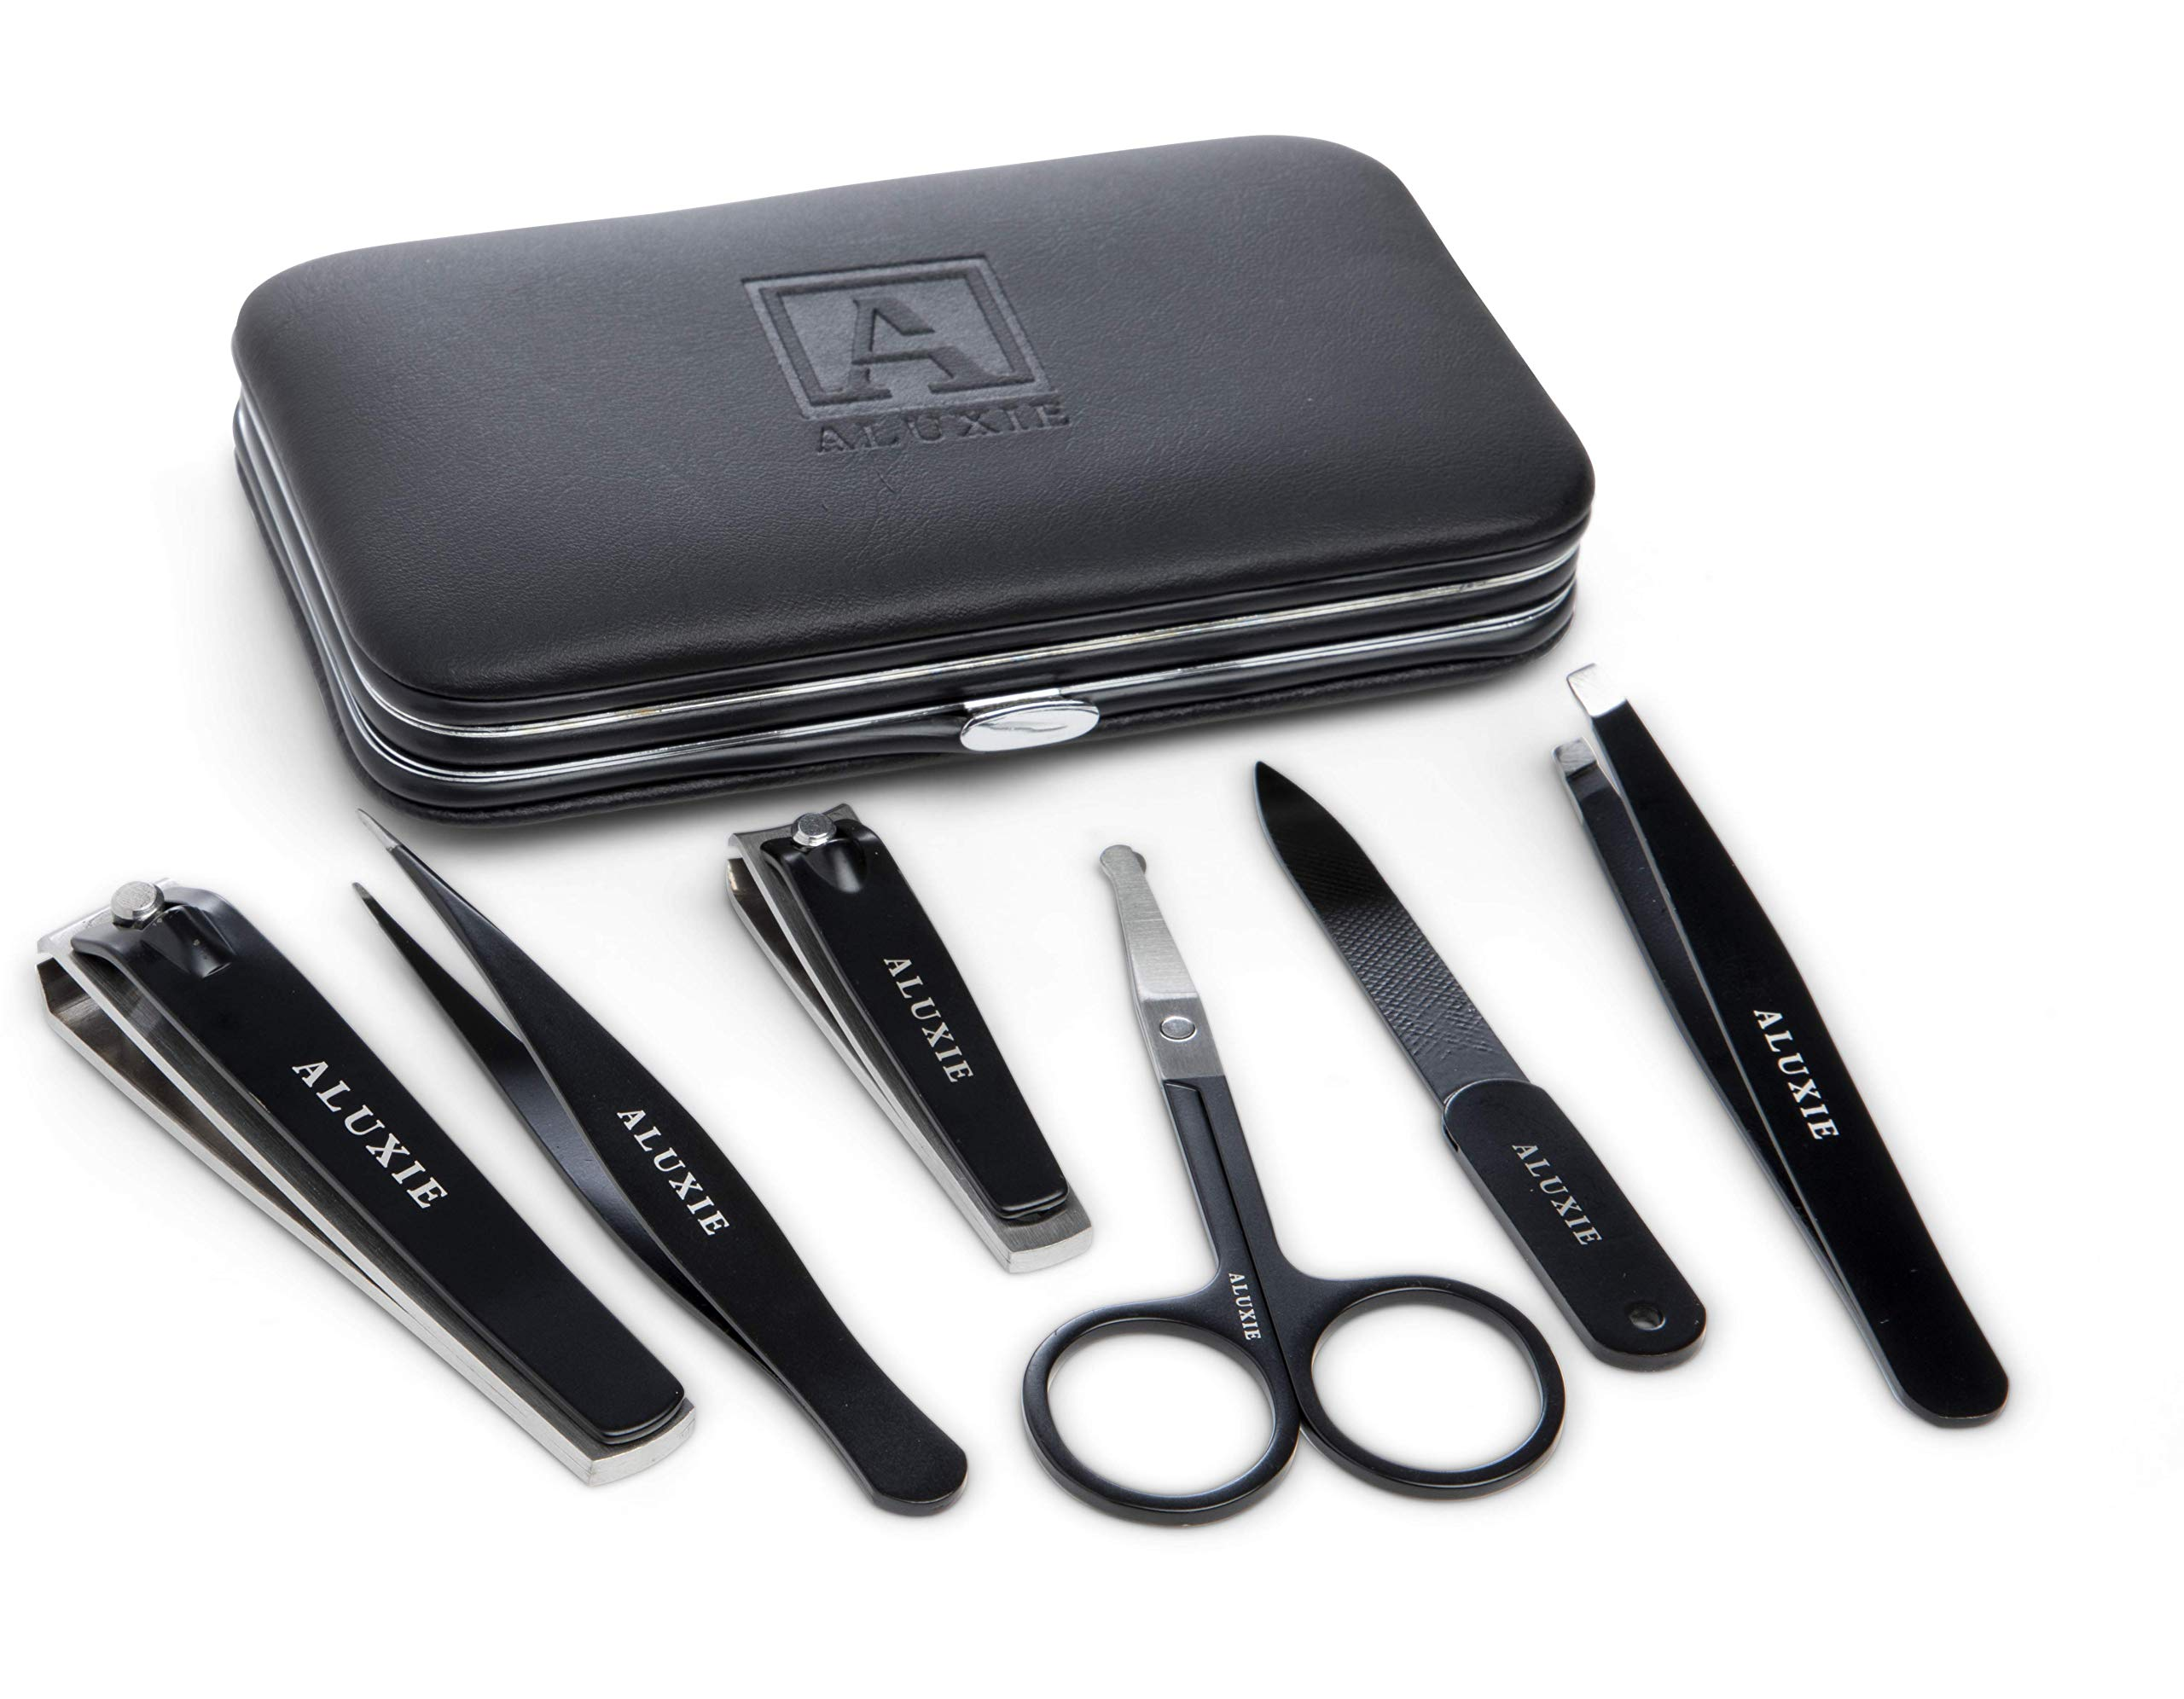 Manicure and Pedicure Kit for Men by Aluxie - Convenient, Time Saving, Luxury Grooming Gift Set, Travel-Size Leather Case - Stainless Steel by Aluxie